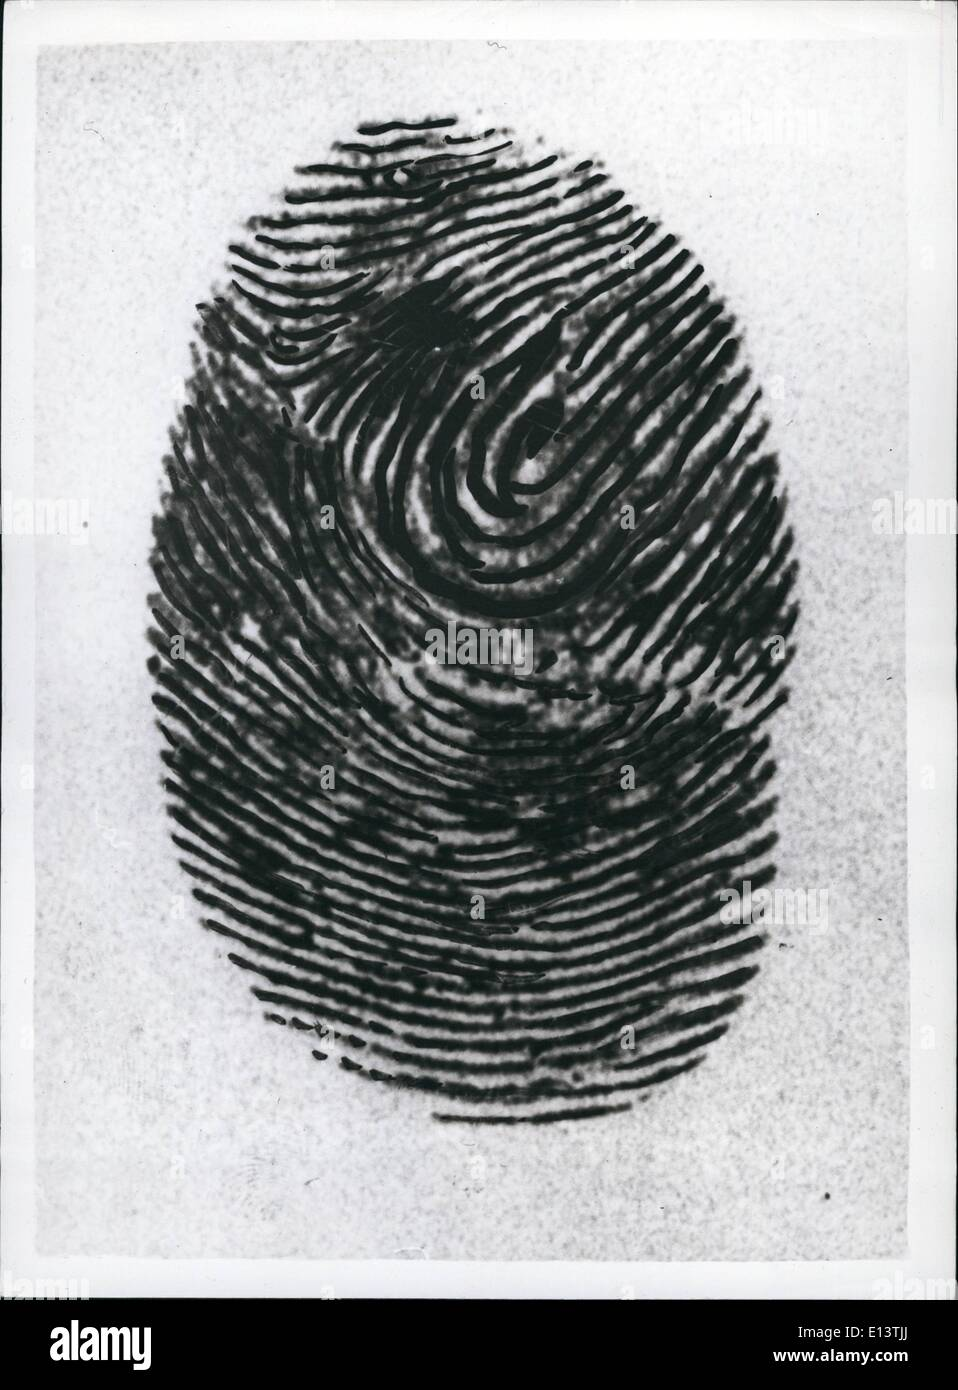 Mar. 27, 2012 - Princess Philip Has His Fingerprints Taken At New Scotland Yard: Prince Philip spent six hours at New Scotland Yard yesterday studying police methods, looking at horror weapons in the Black Museum, visiting the Rogue's Gallery, the Forensic Laboratory, and the Fingerprint department, where he agreed to have his fingerprint taken. Photo Shows: The Prince's ''Dab'' - the print from his middle finger of his left hand. - Stock Image